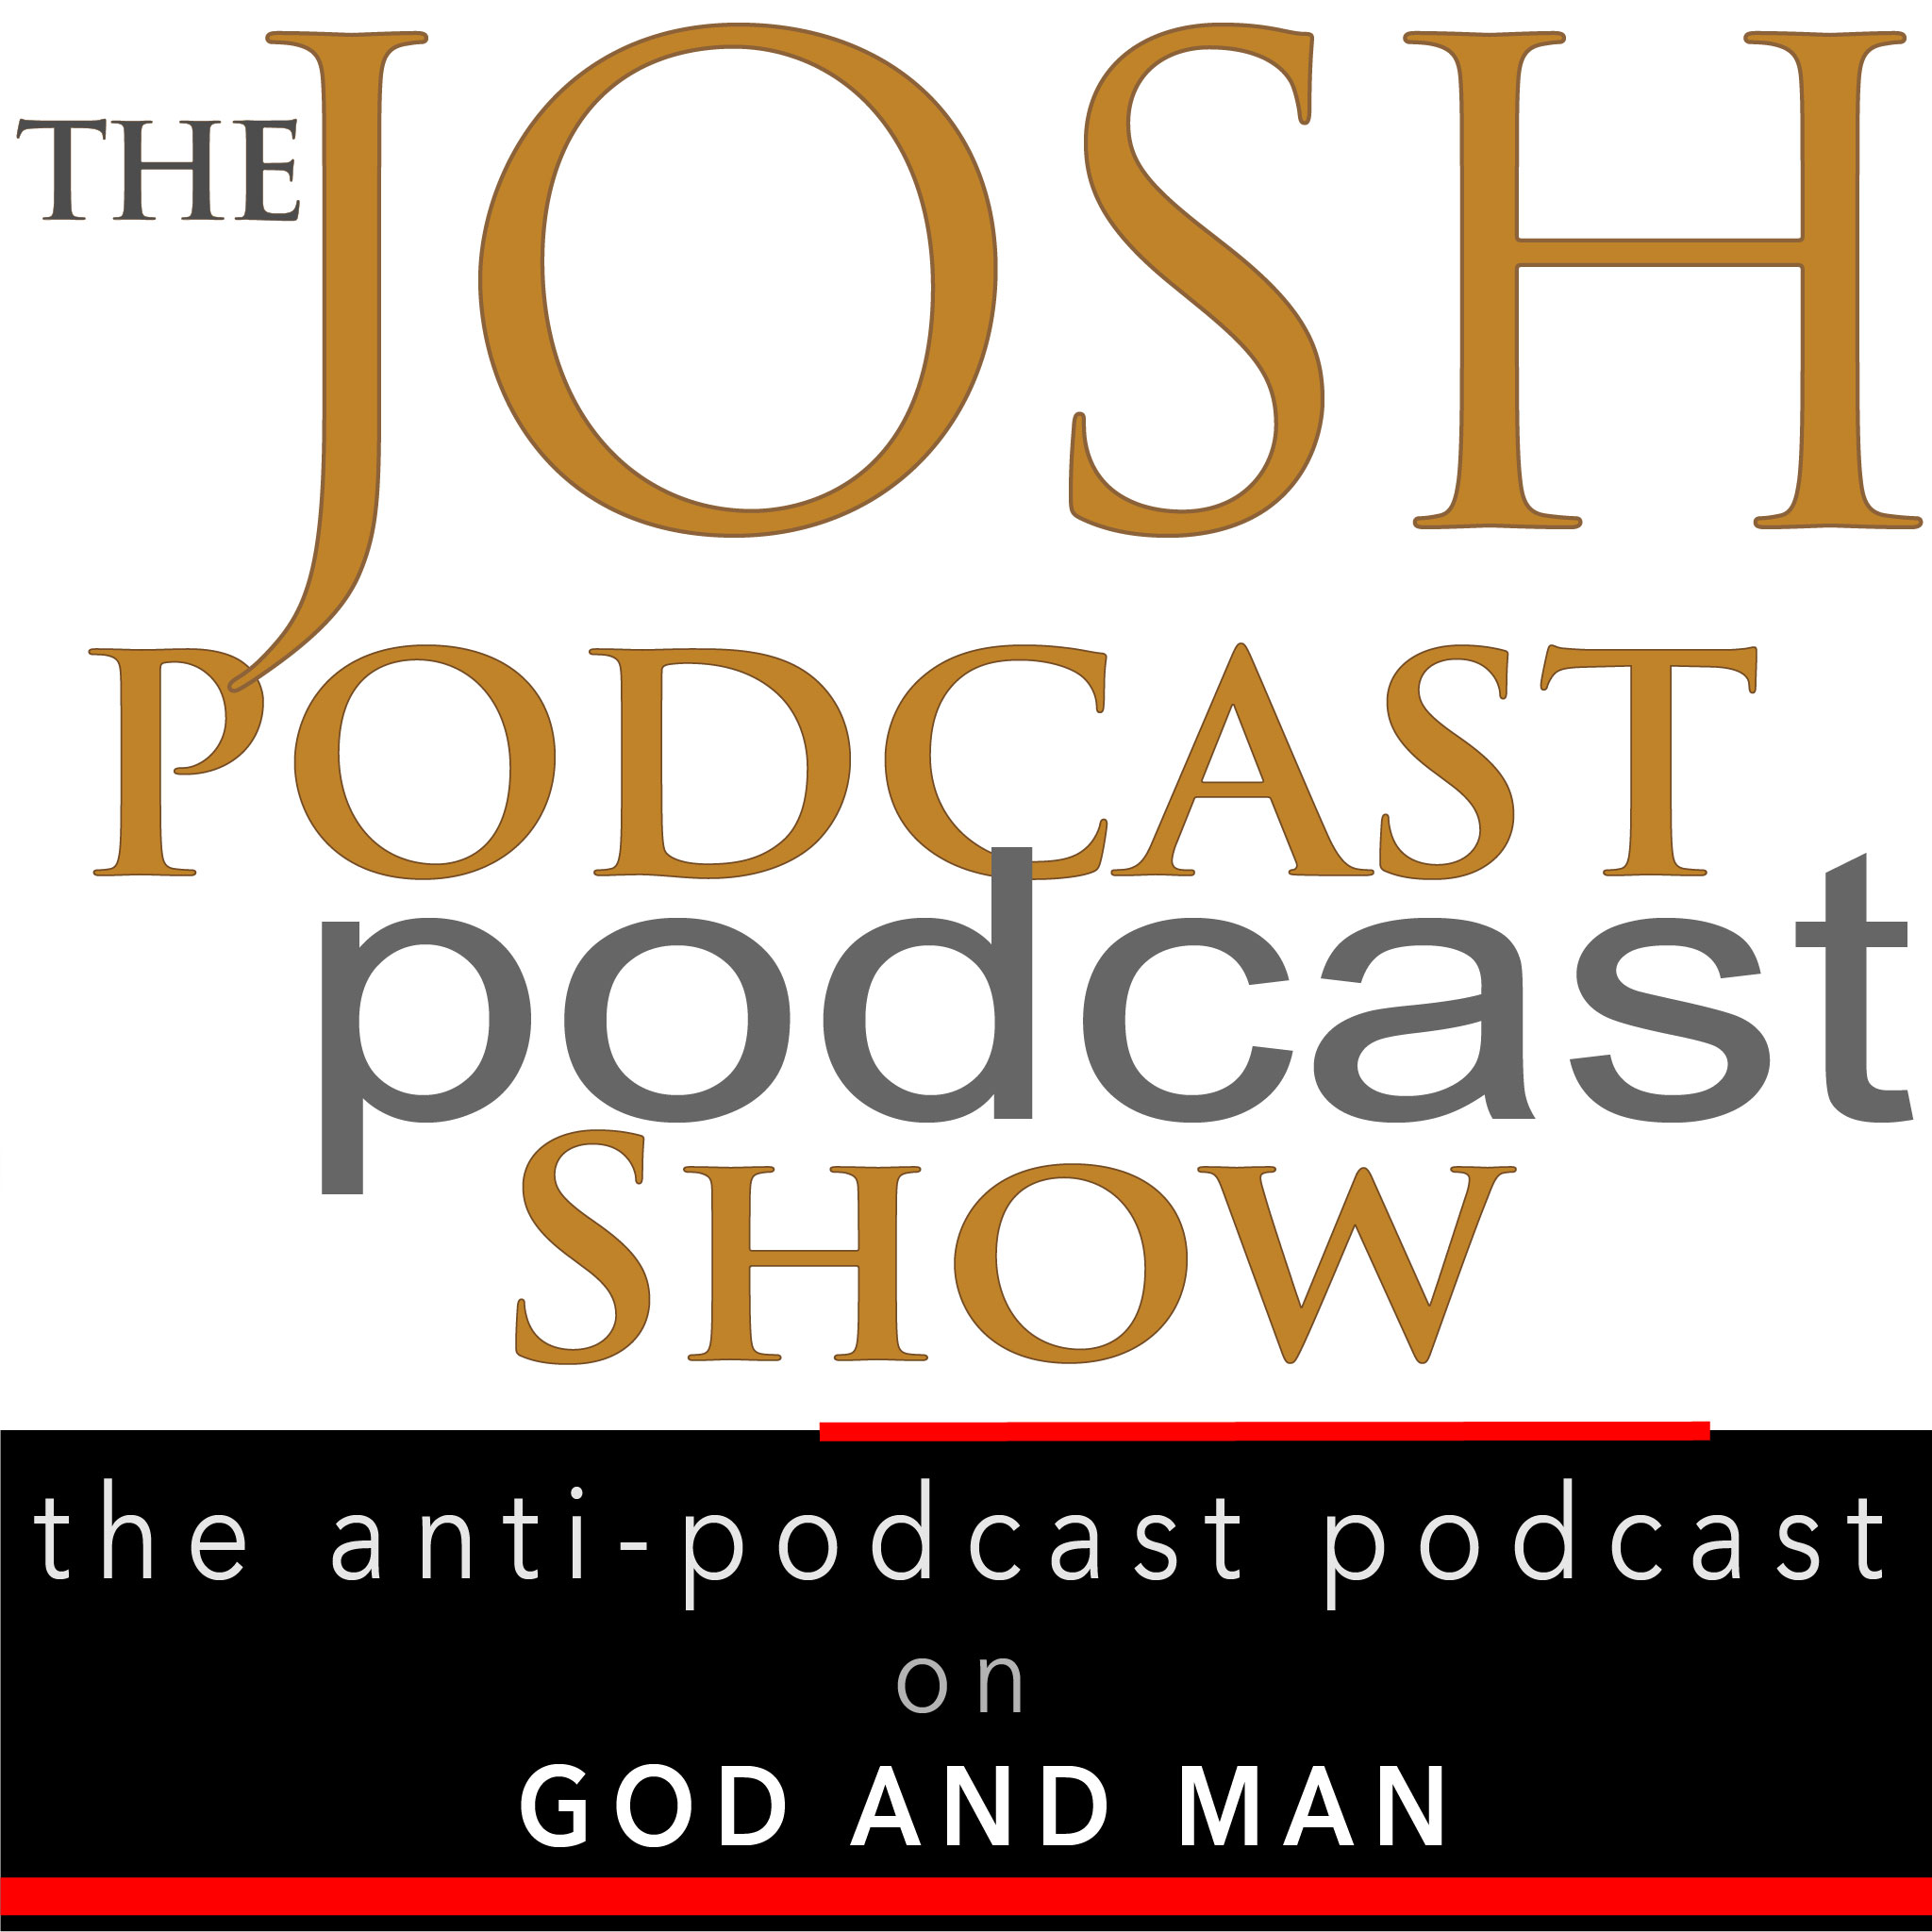 Josh Podcast podcast   – An extension of the blog